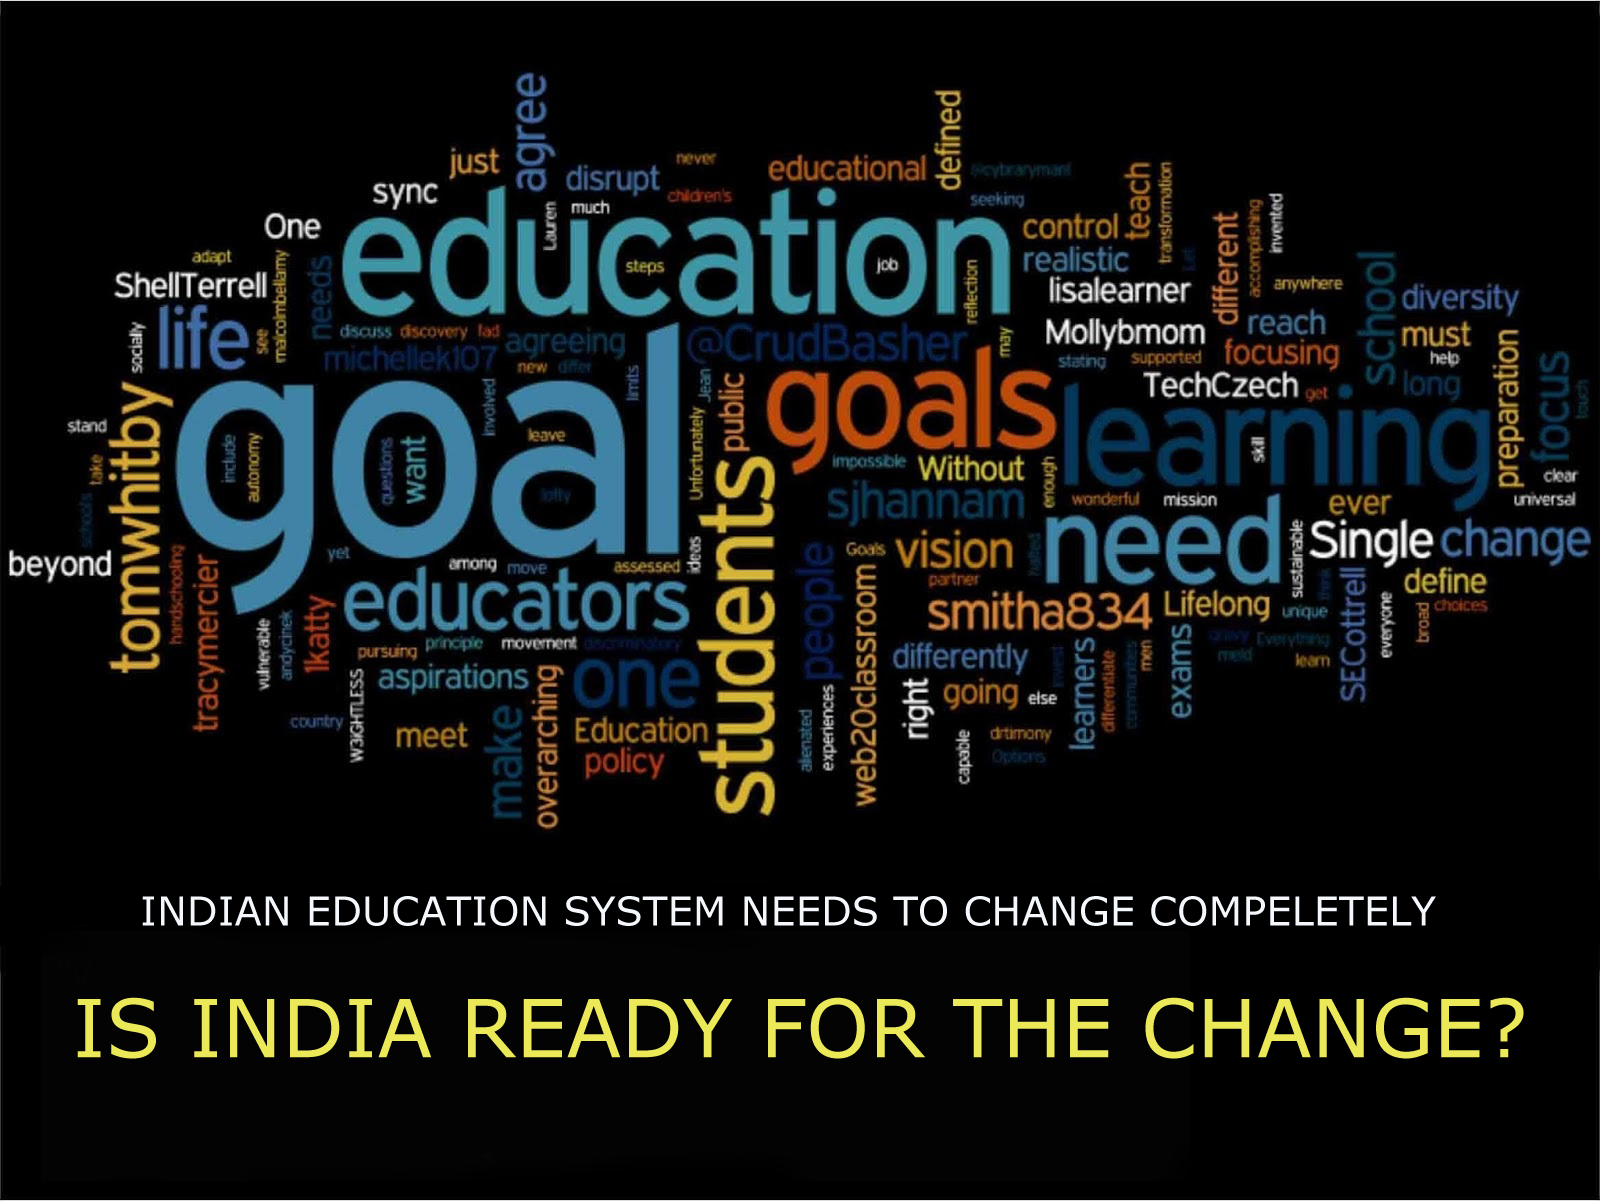 What Do We Need To Change About Indian Education System